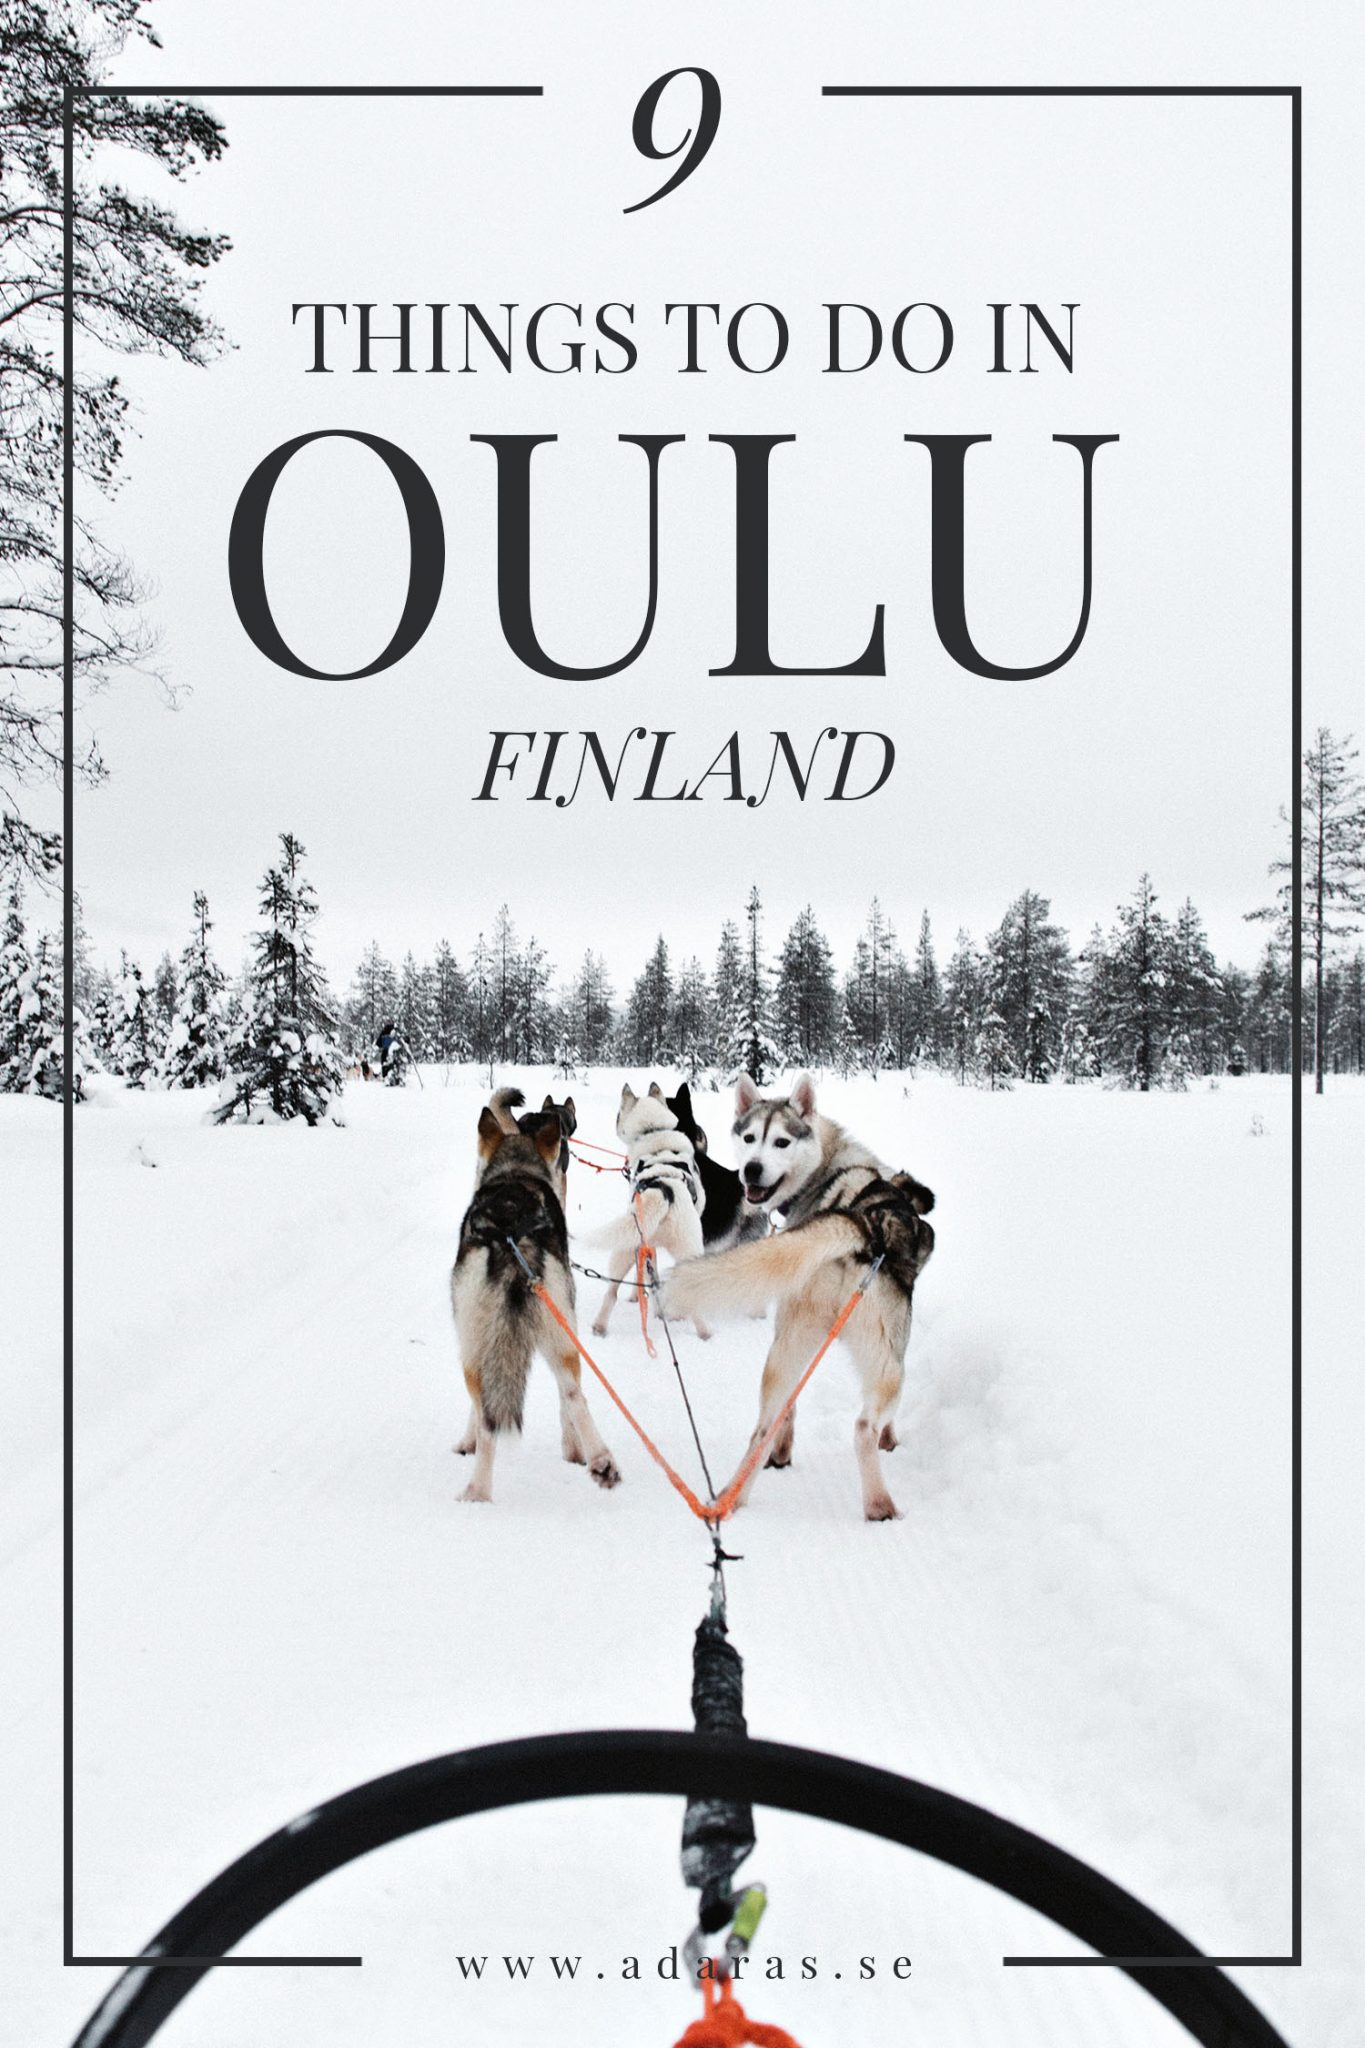 9 things to do in Oulu, Finland this winter - saker att göra i Uleåborg på vintern